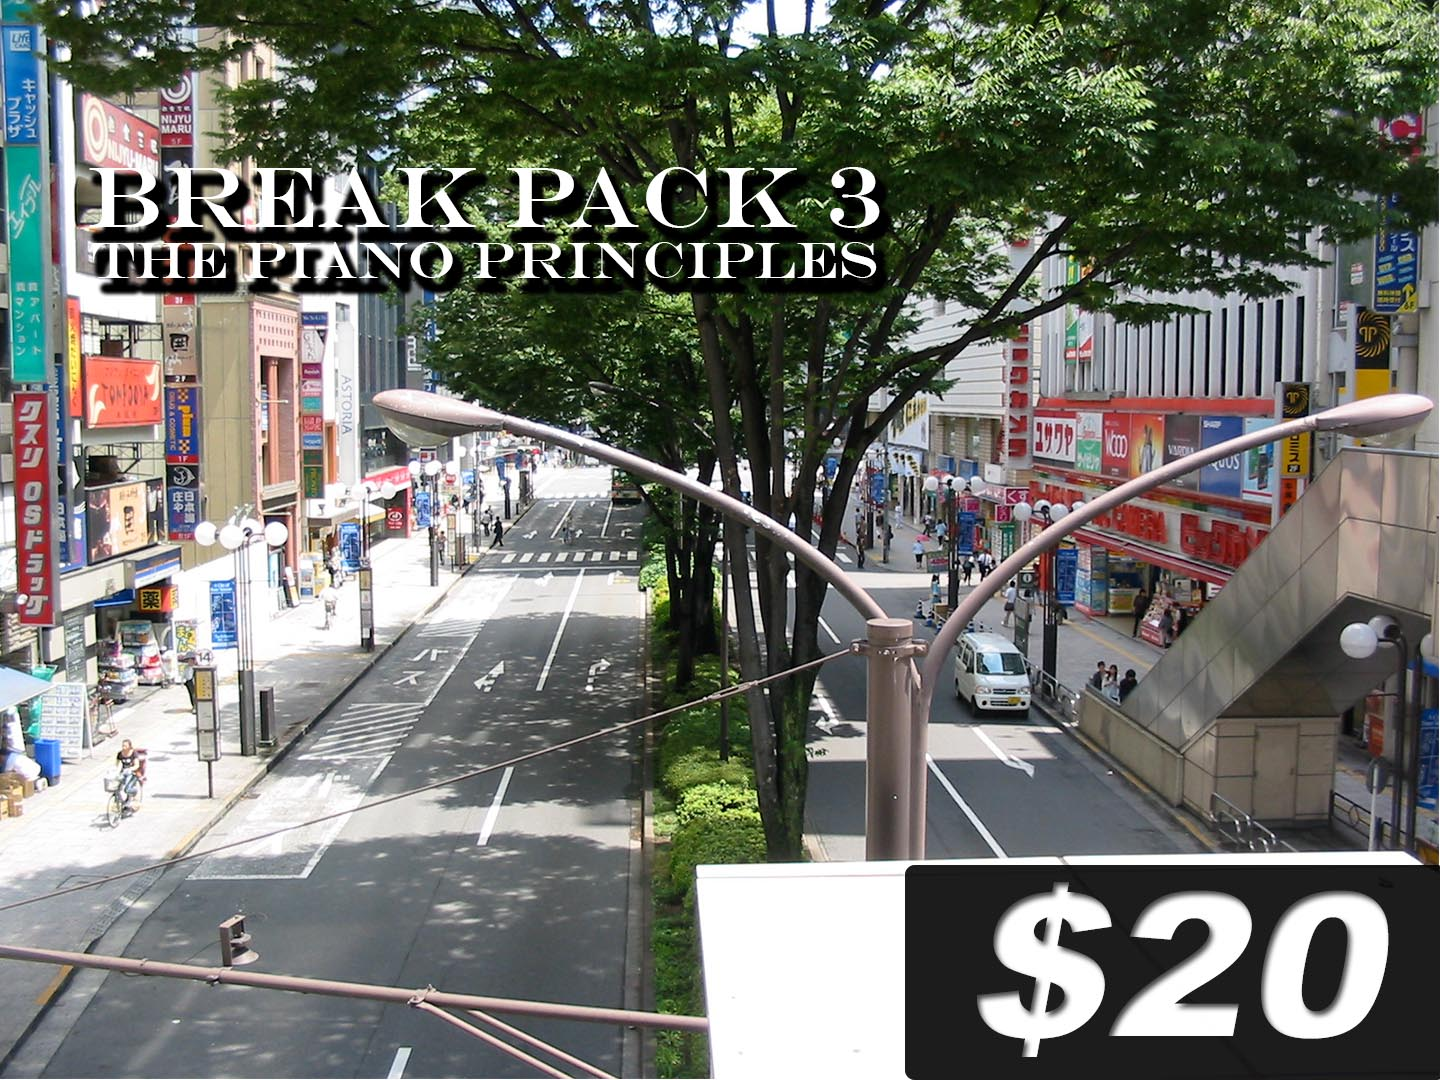 breakpack-3-price-with-corner-75